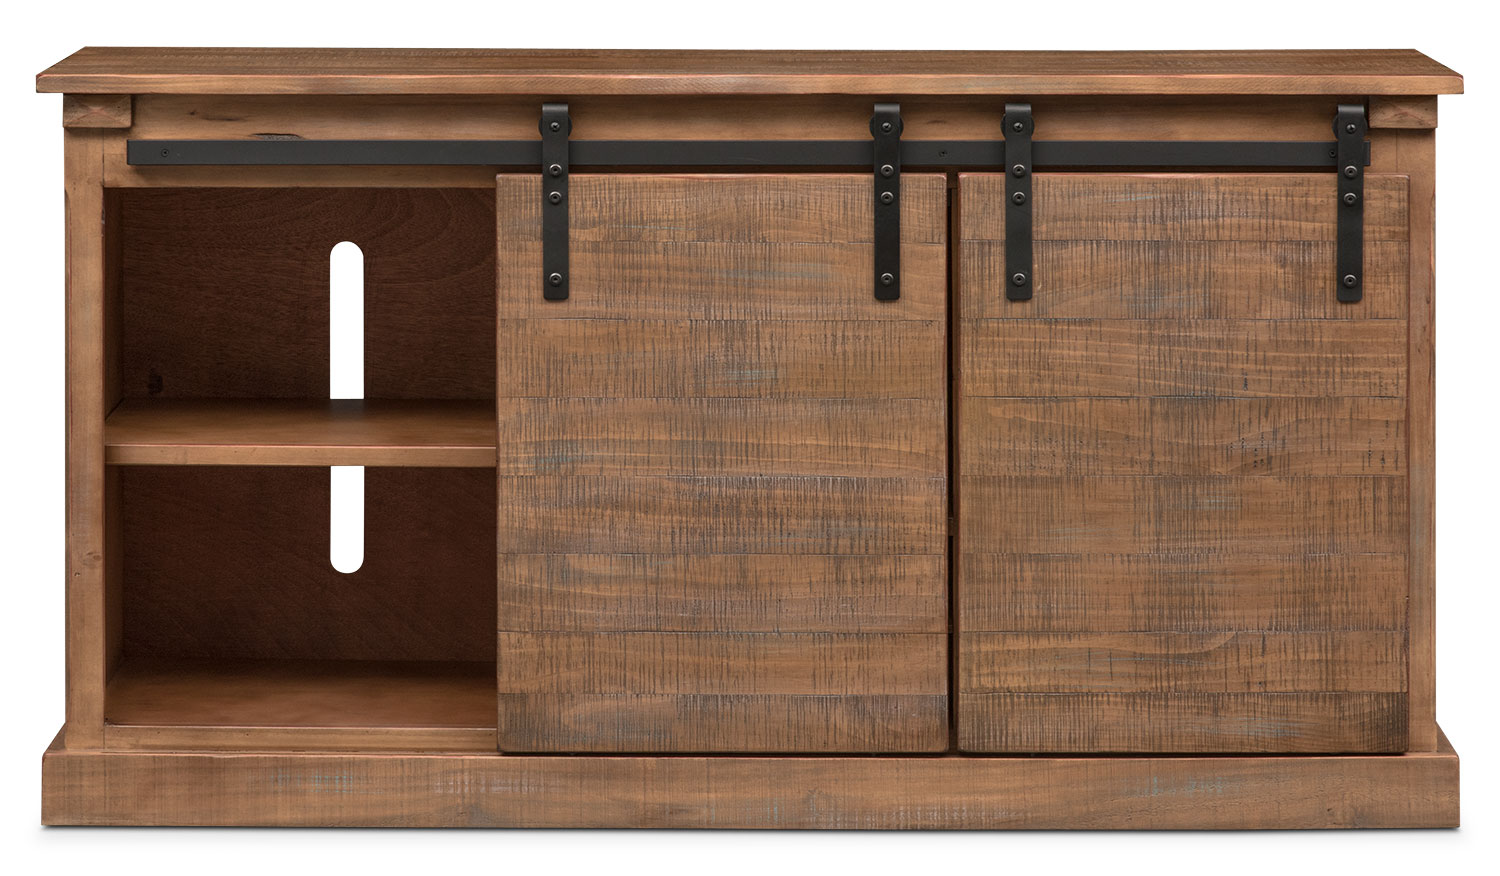 Click to change image. & Ashcroft Media Credenza with Wine Storage - Driftwood | American ...